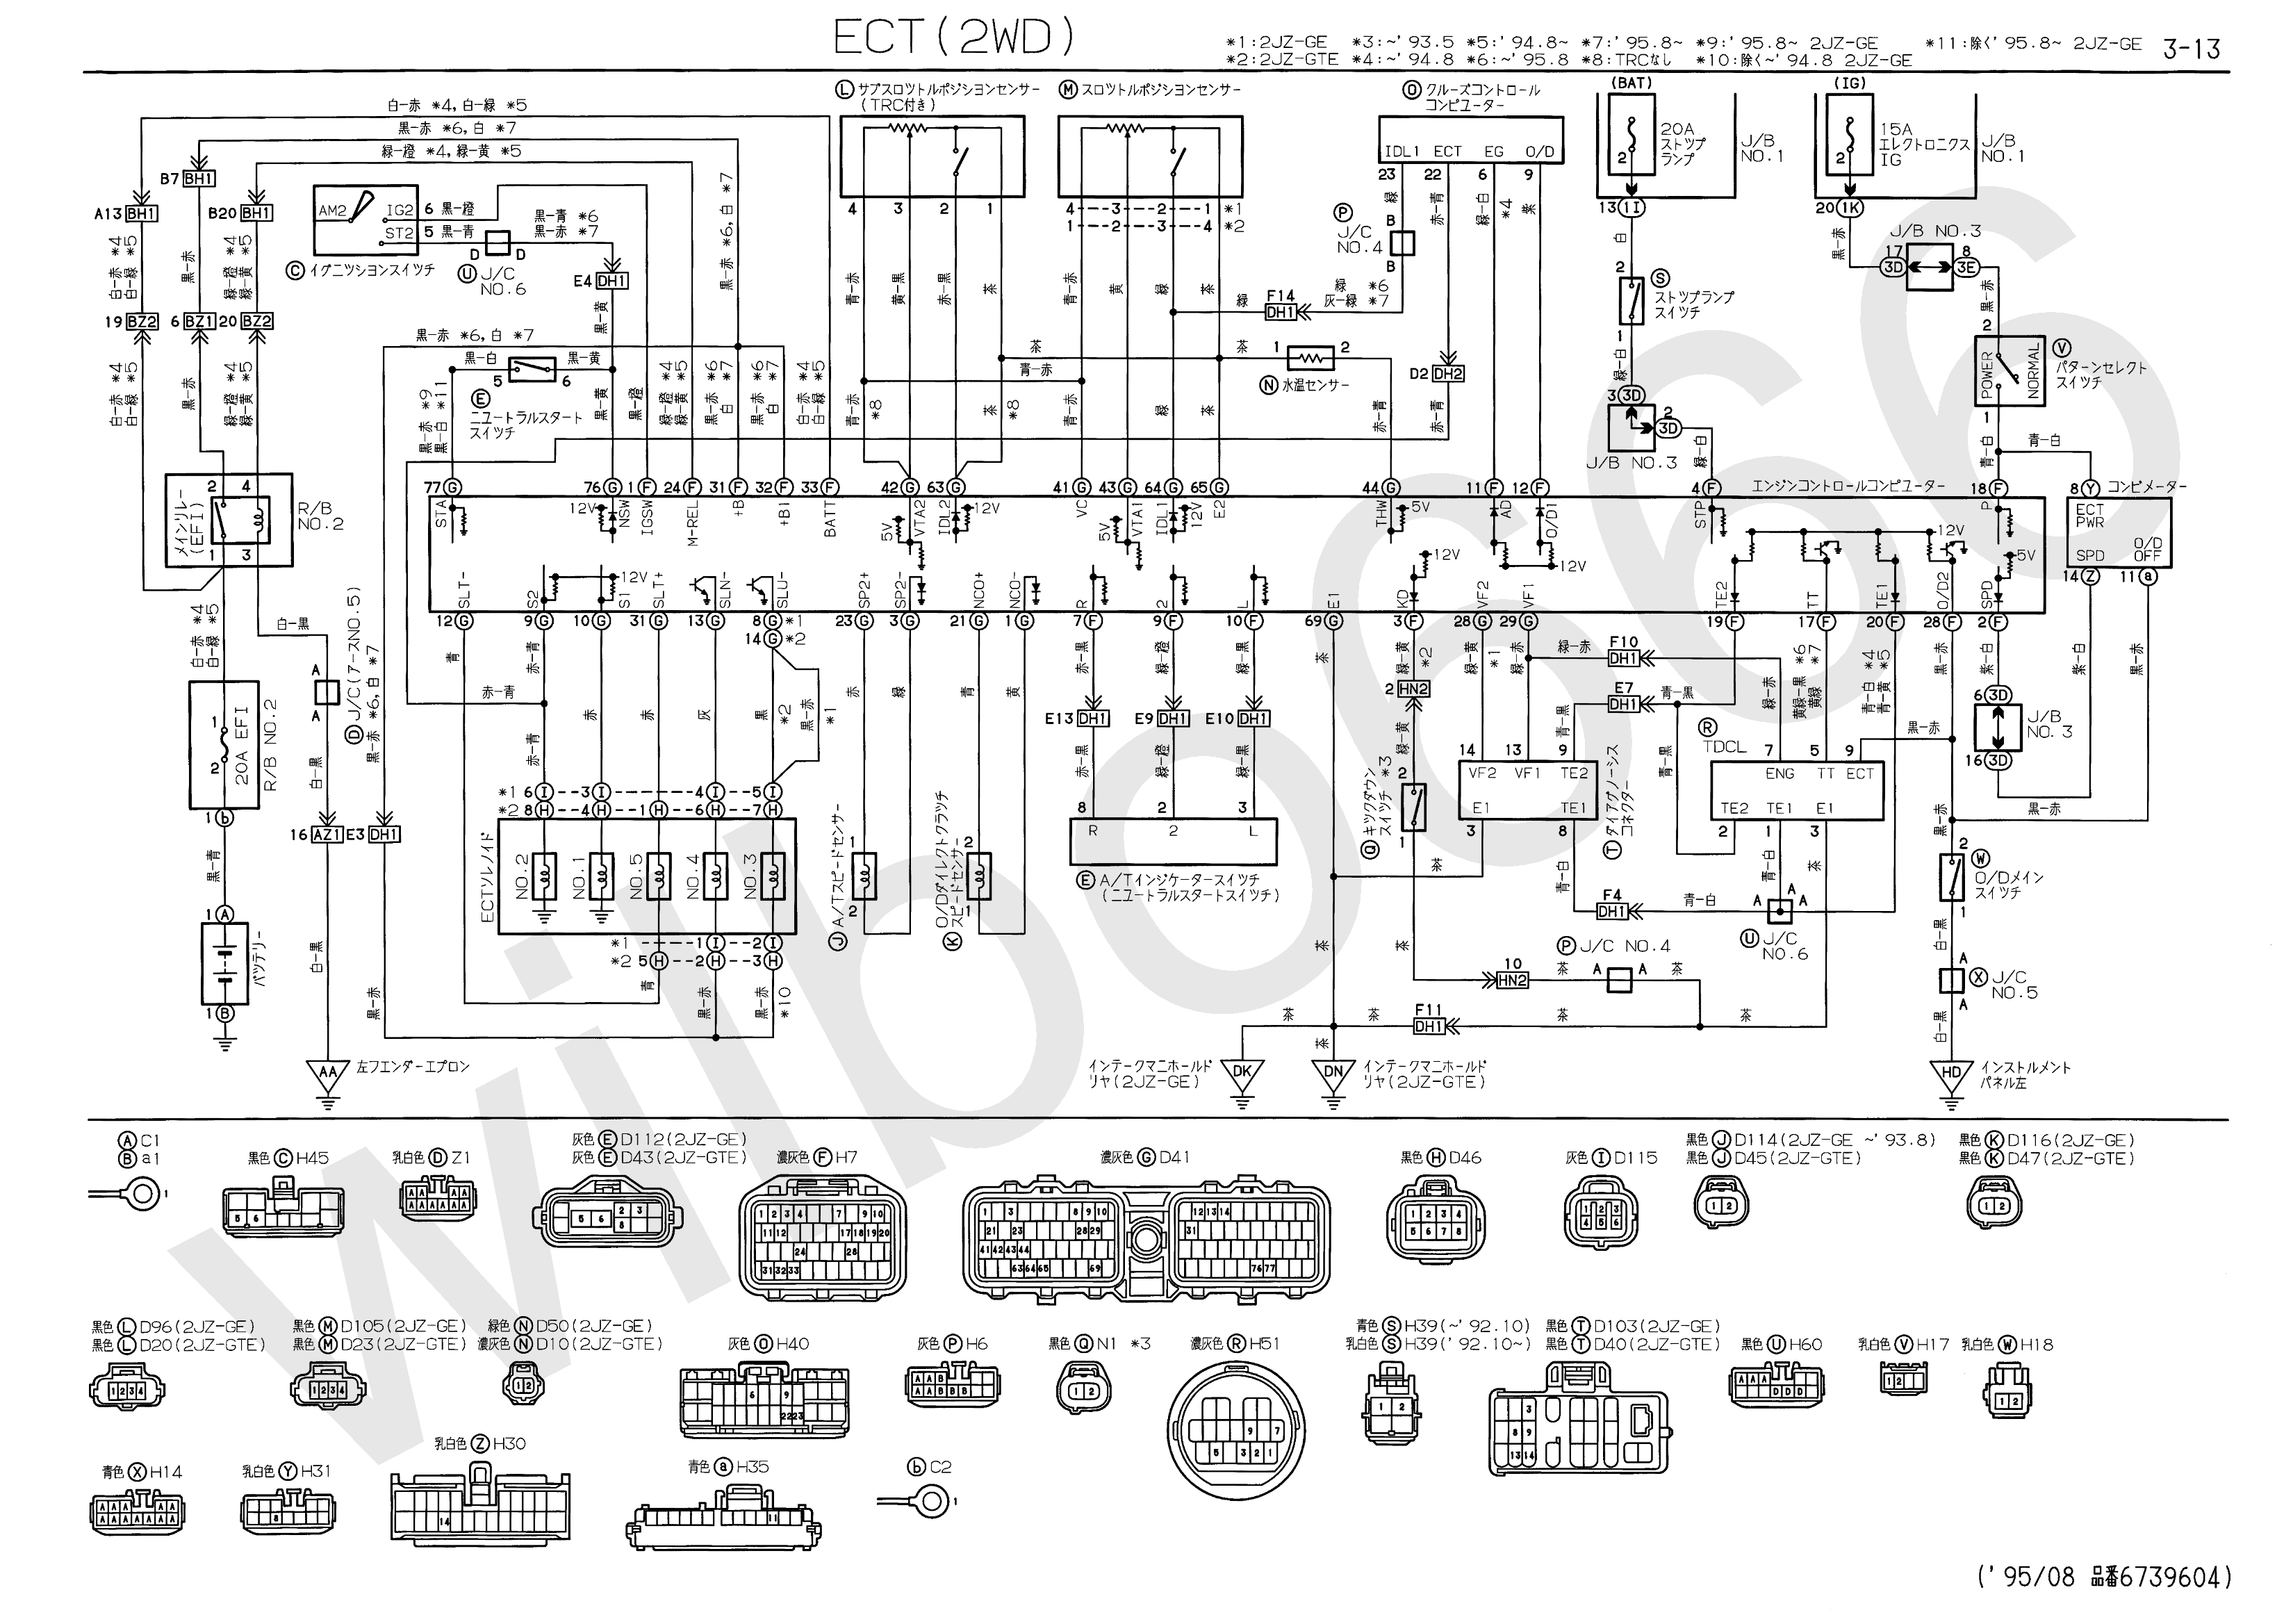 Wiring Schematics in addition KC3n 16021 as well Factory Car Stereo Wiring Diagrams additionally P 0996b43f8036e3a6 also 2JZ GTE 20JZS147 20Aristo 20Engine 20Wiring. on 2005 jeep grand cherokee solenoid